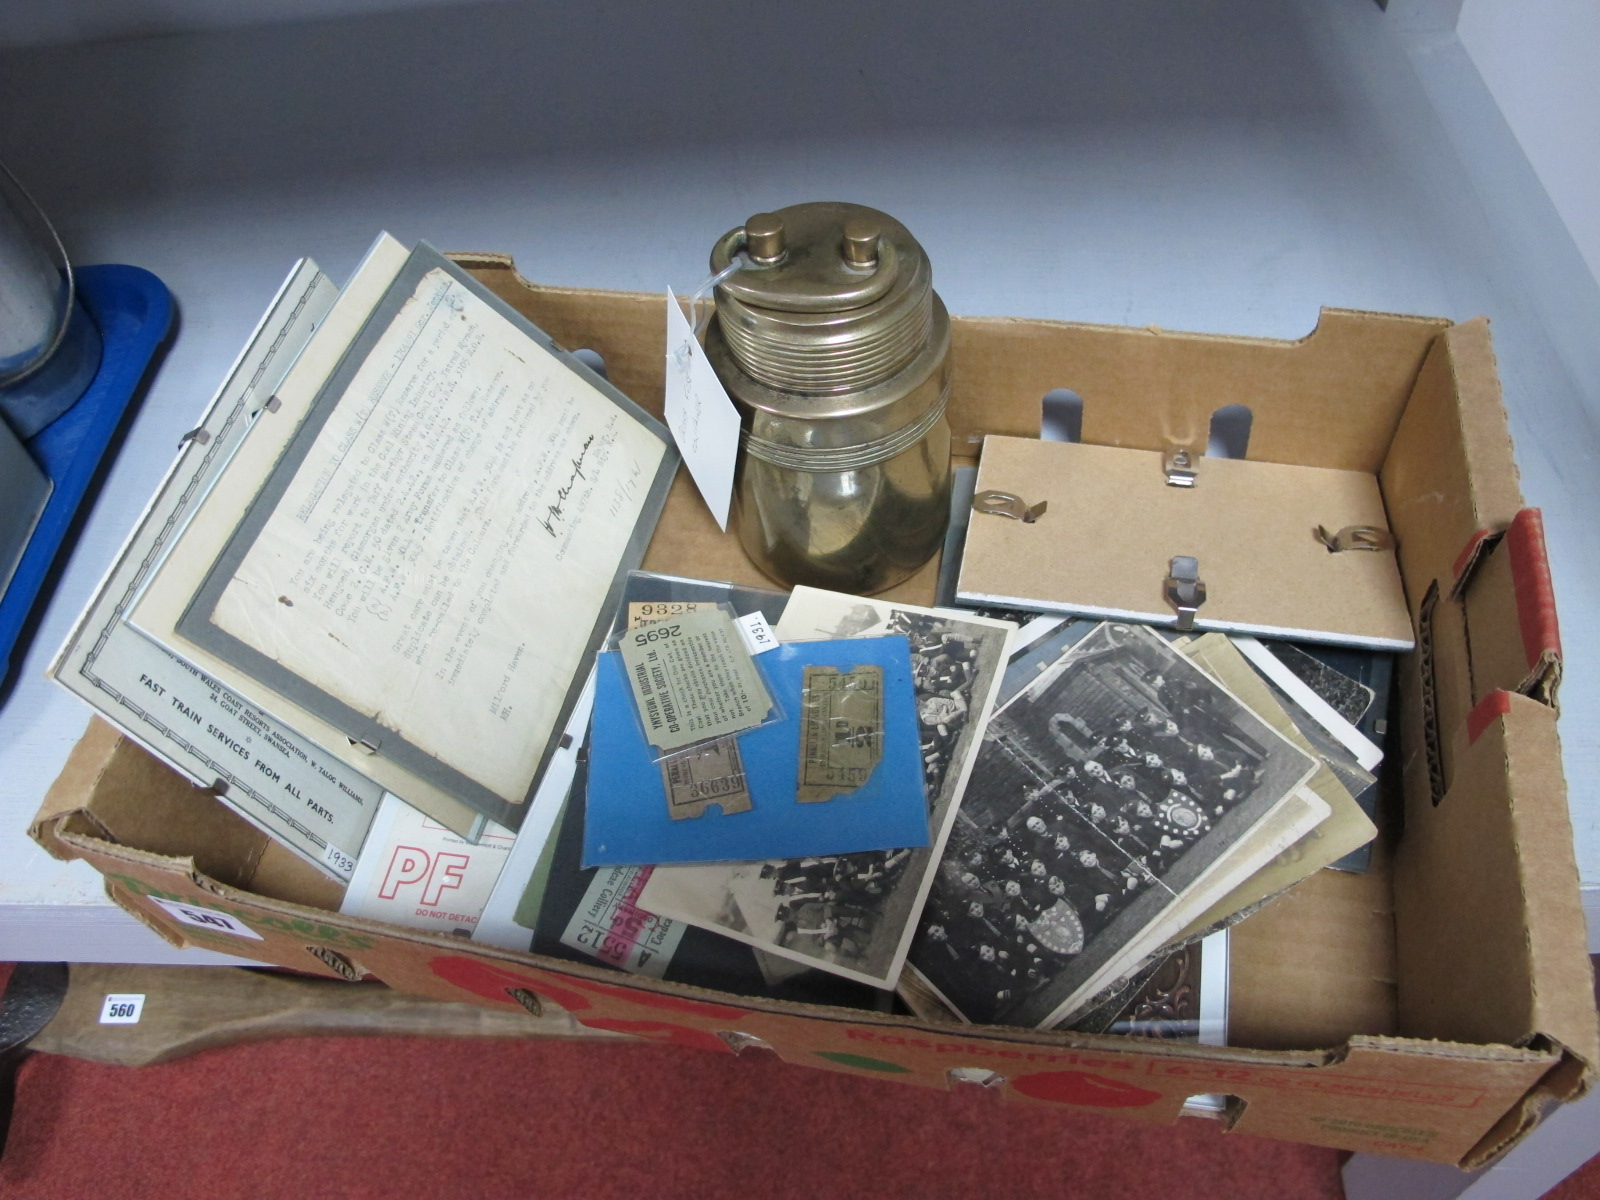 Mining Paper Ephemera. Including Postcards, NUM Membership Cards, Railway Tickets; together with